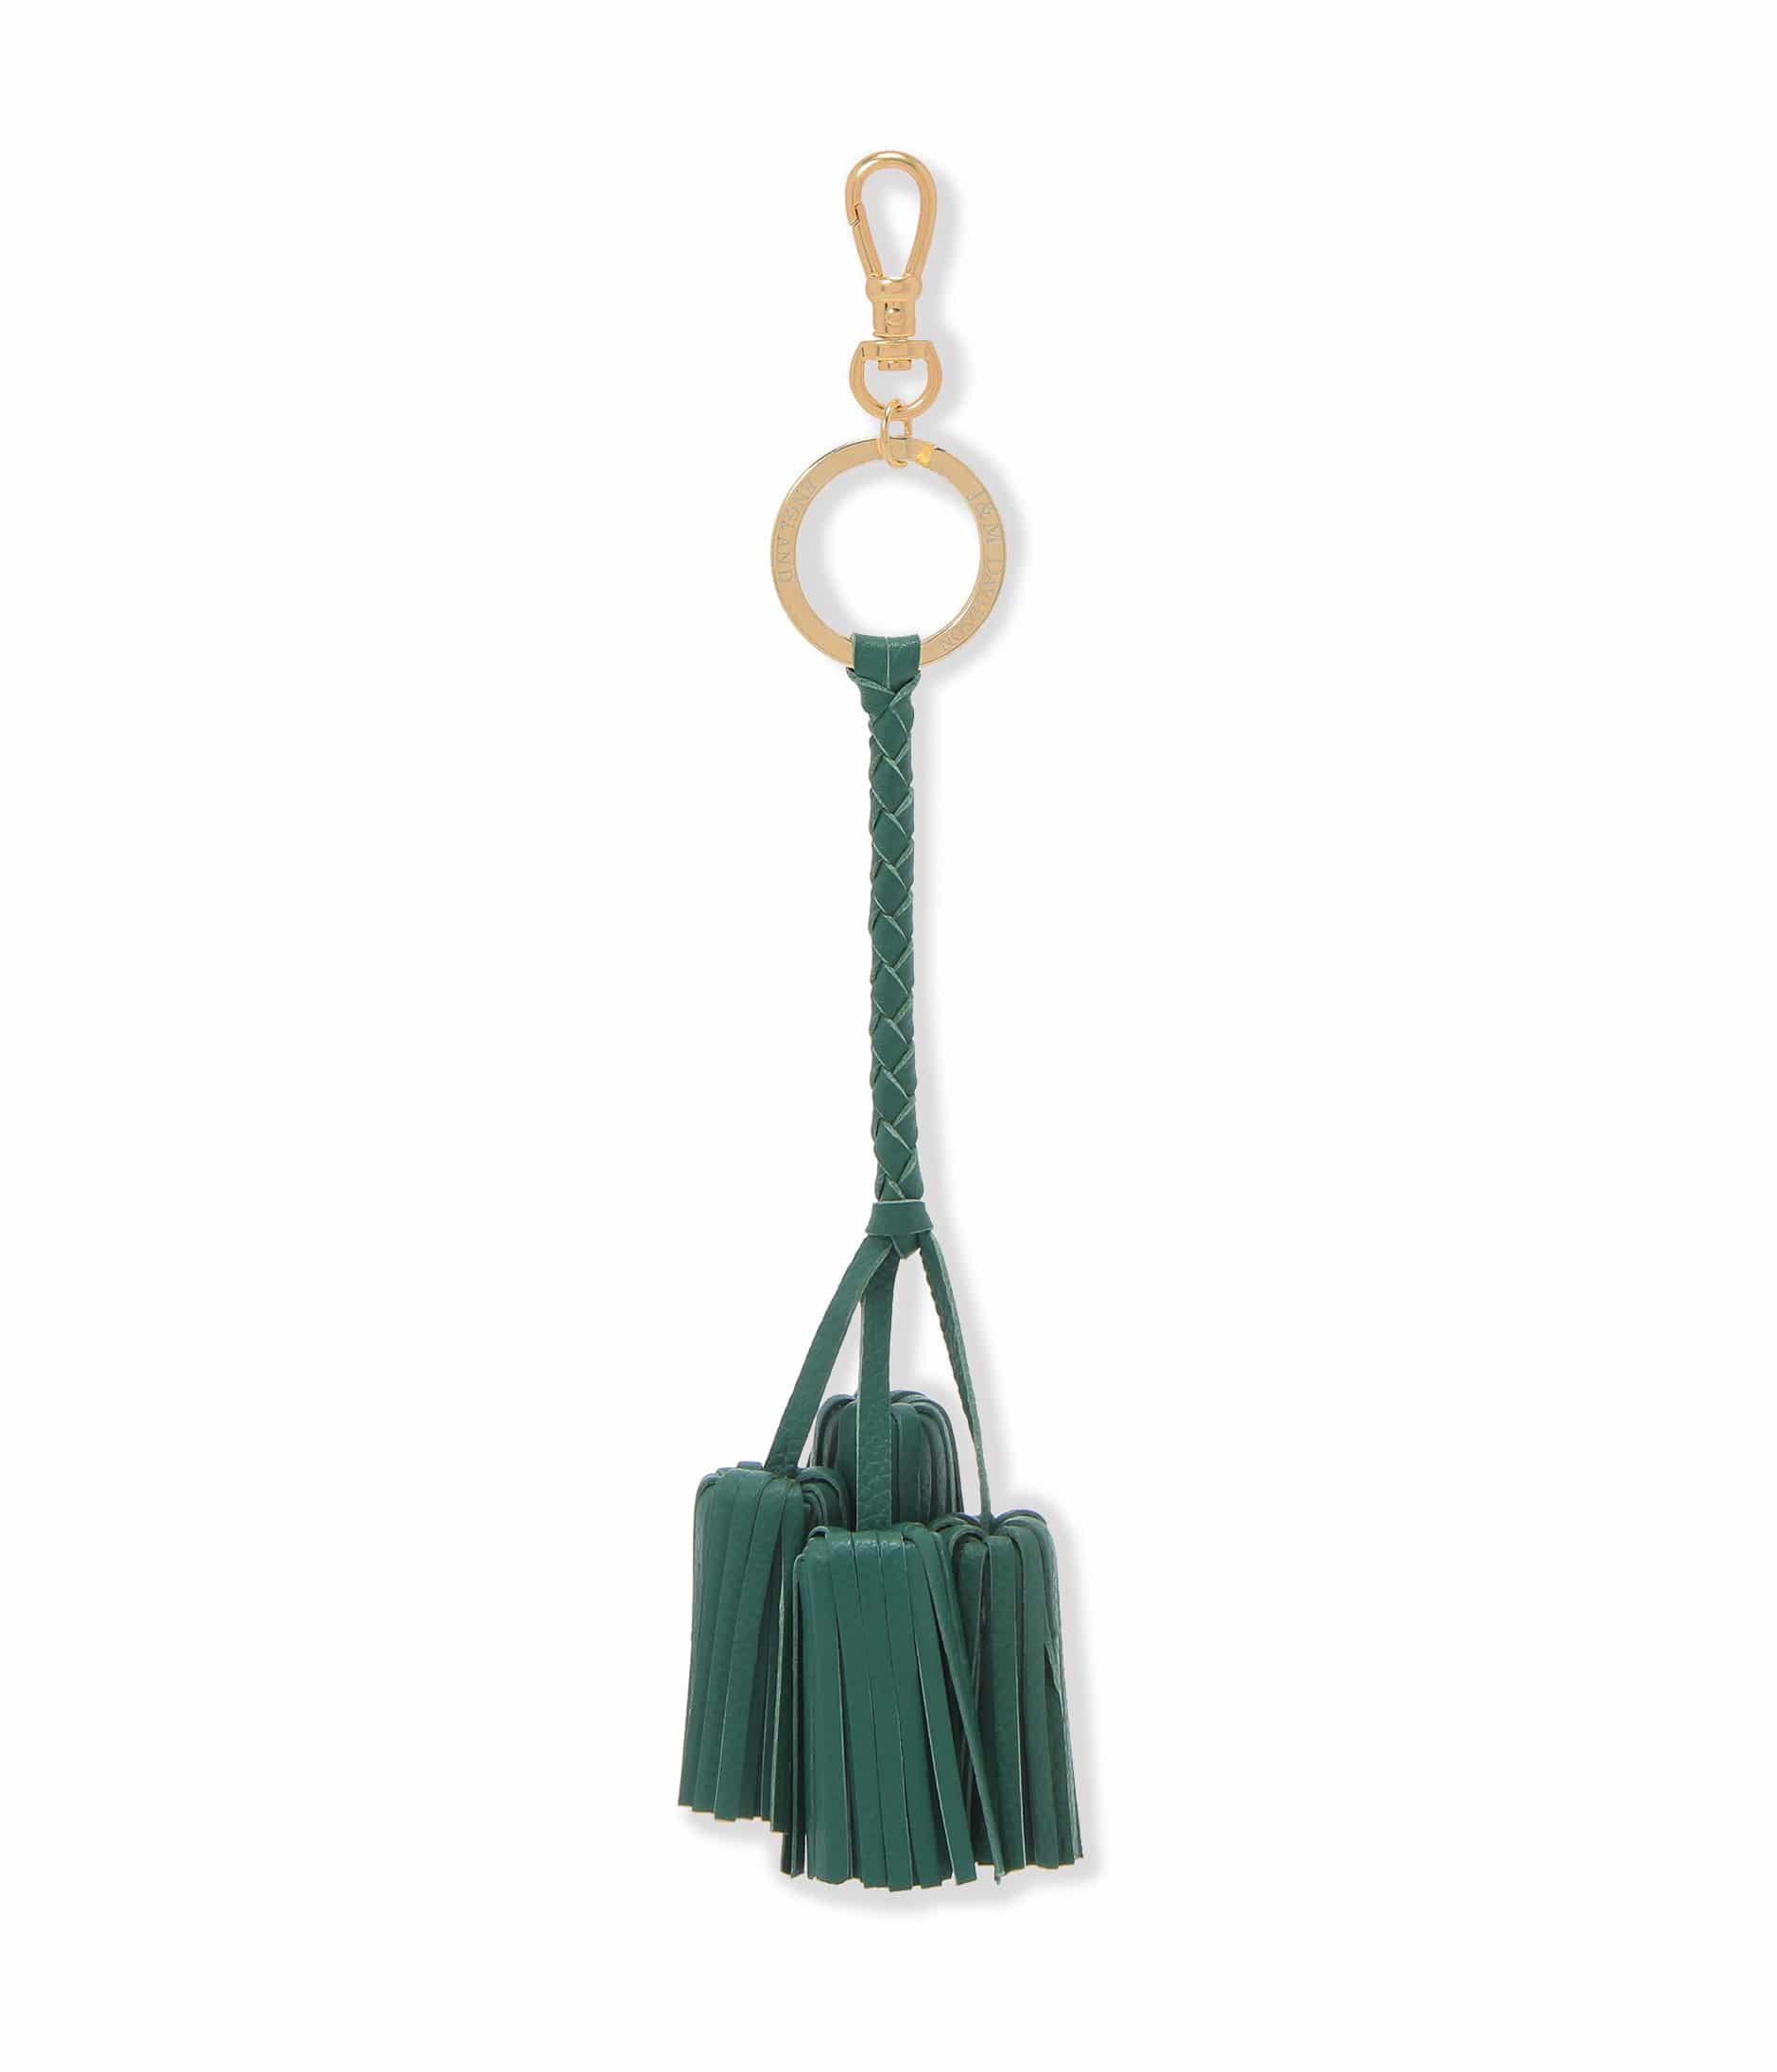 KEY TASSEL 詳細画像 AVOCADO GREEN 1